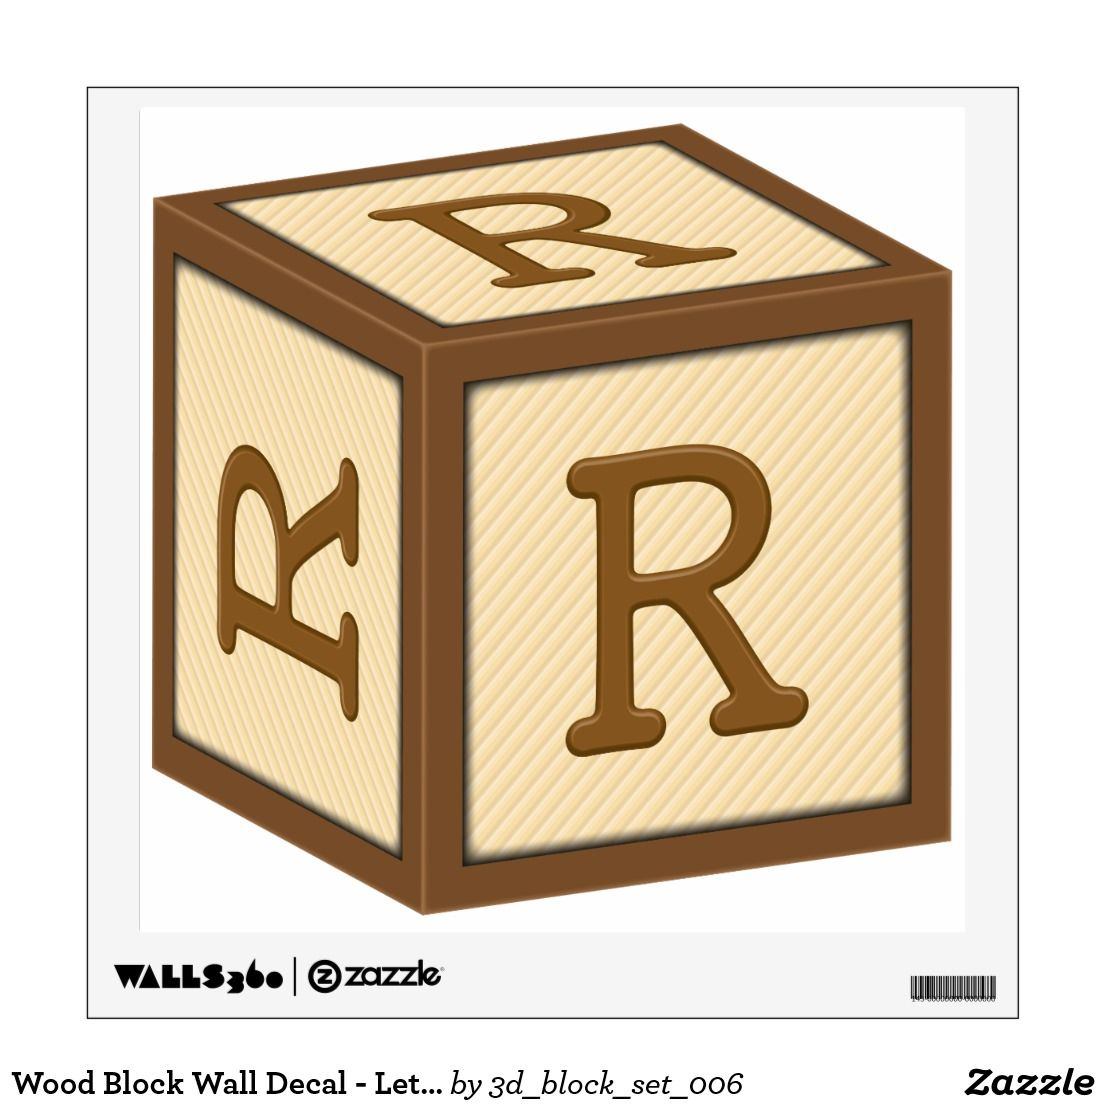 This wall decal features. R clipart block letter